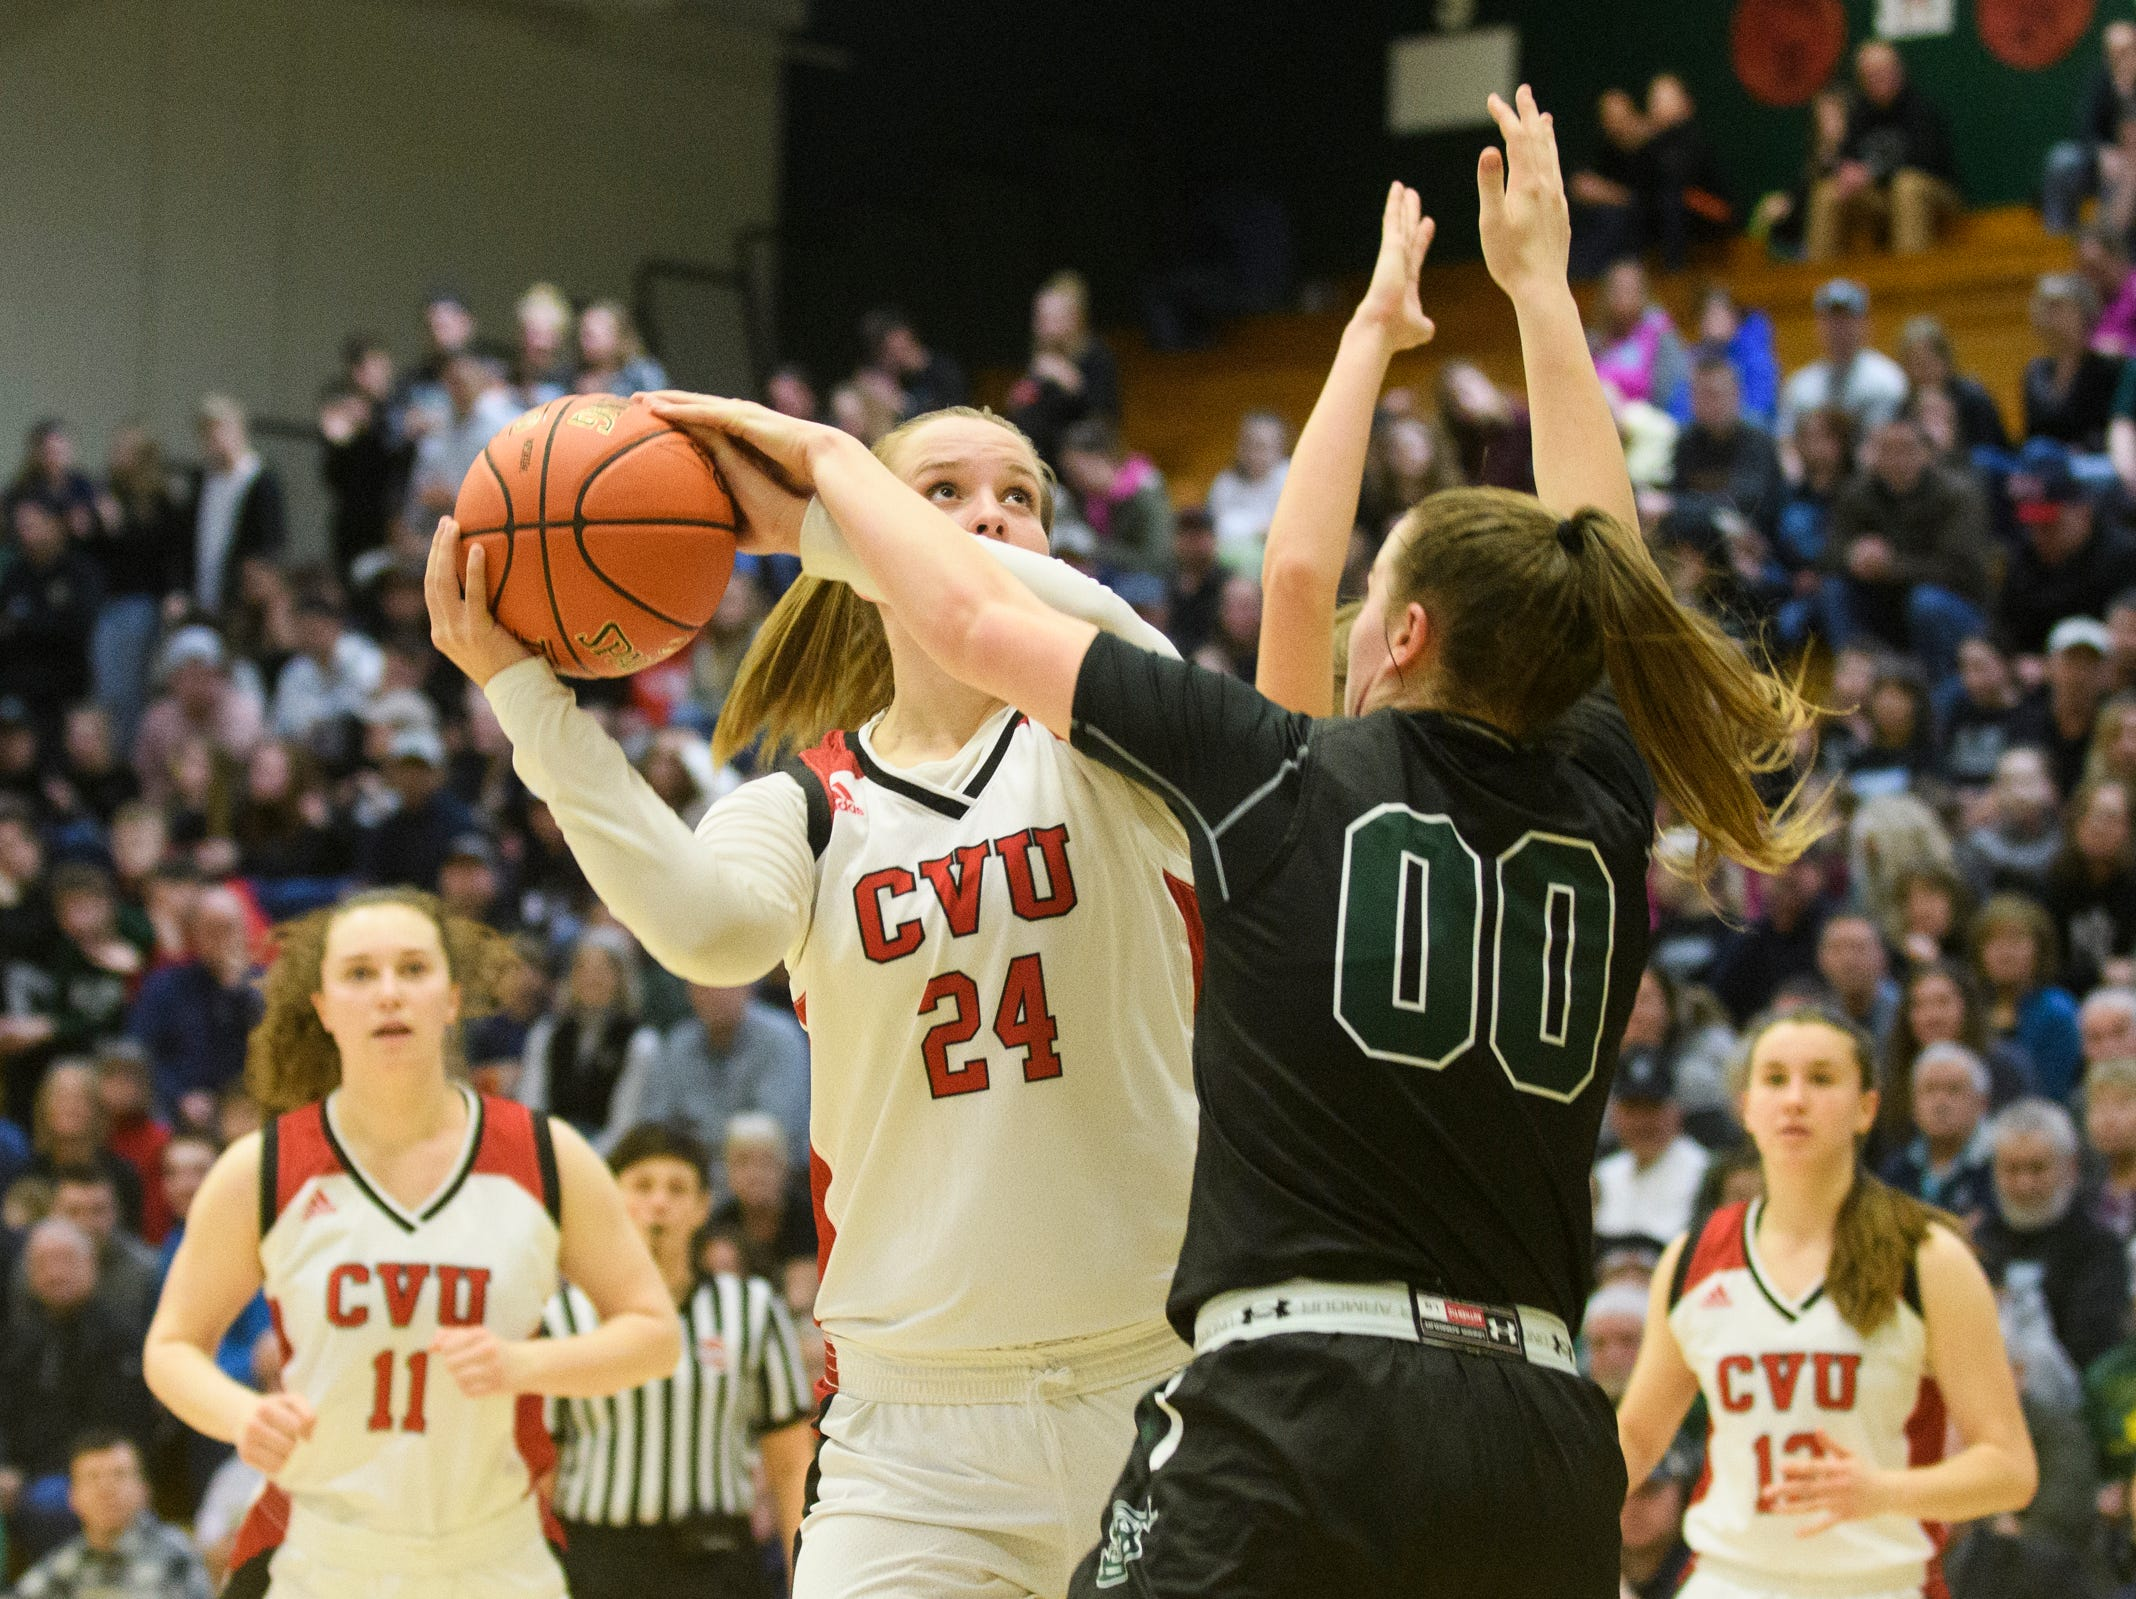 St. Johnsbury's Saleena Porter (00) fouls CVU's Kaylee Beyor (24) as she drives to the hoop during the division I girls basketball championship basketball game between the St. Johnsbury Hilltoppers and the Champlain Valley Union Redhawks at Patrick Gym on Sunday afternoon March 10, 2019 in Burlington, Vermont.